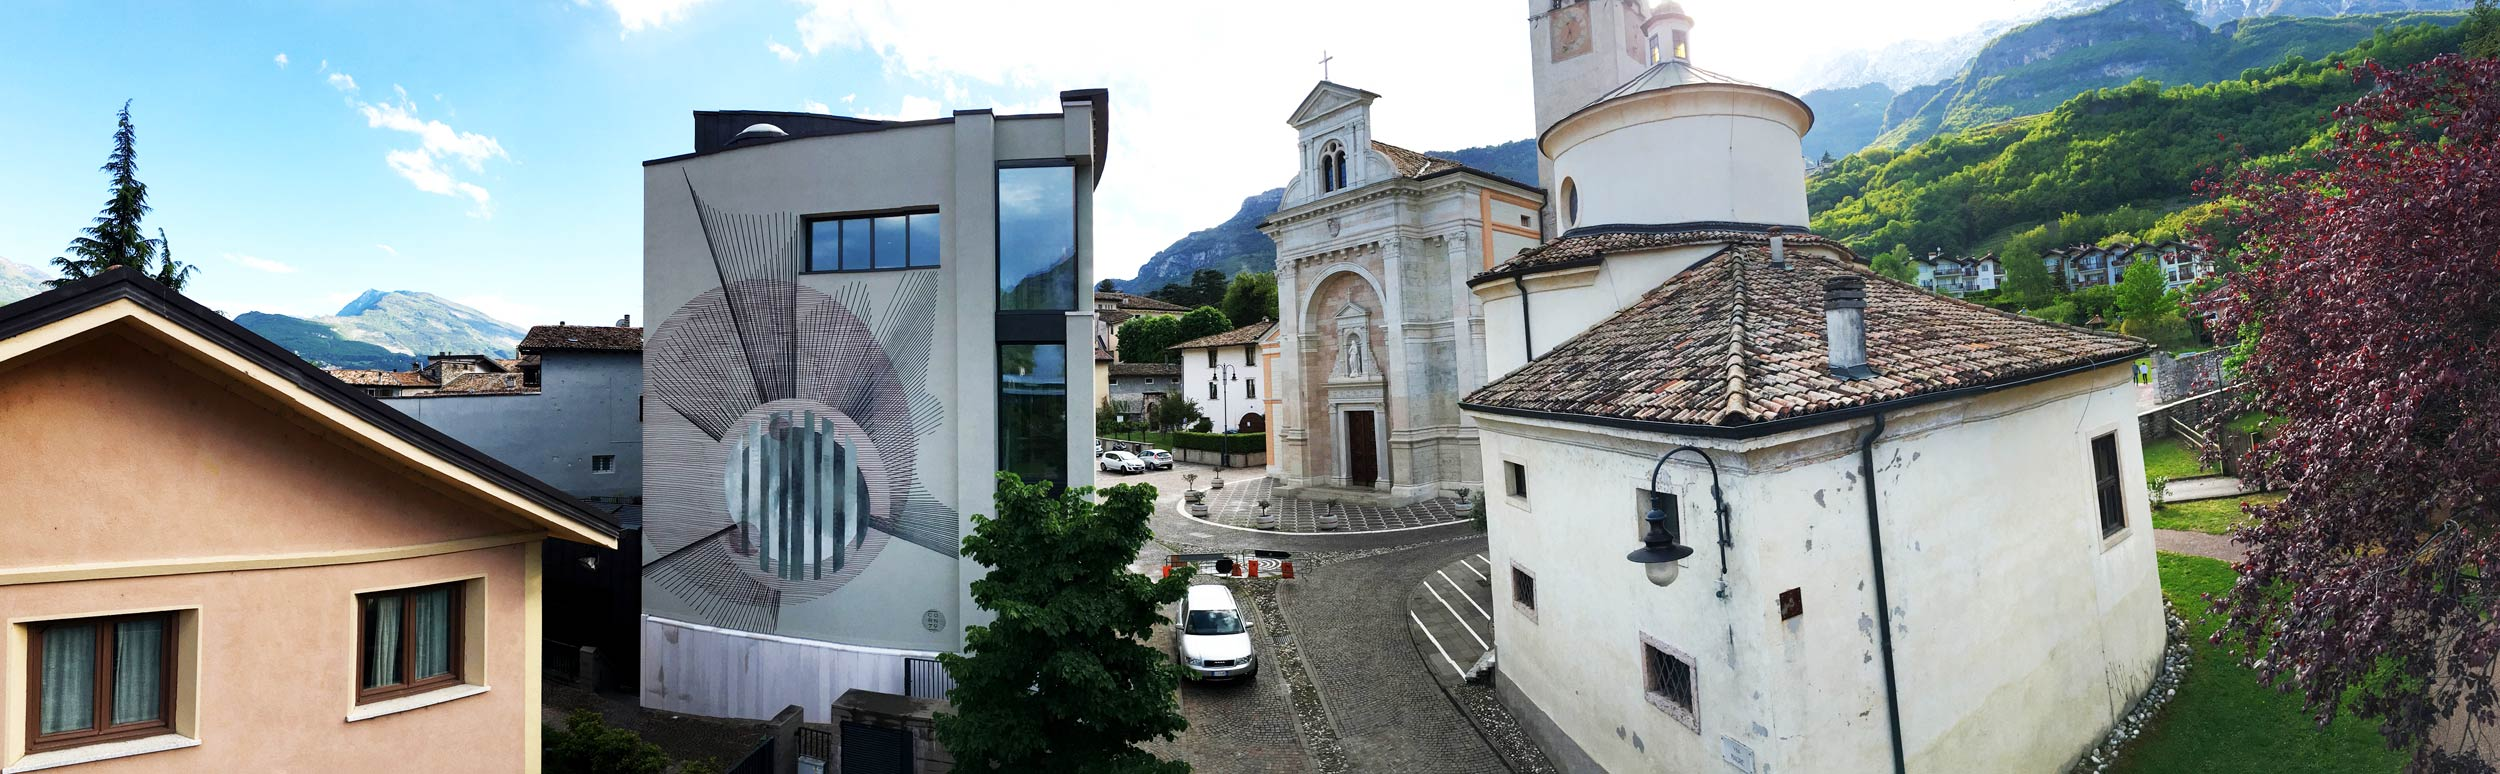 Corn79 and His New Mural in Tiny Villa Lagarina, Italy